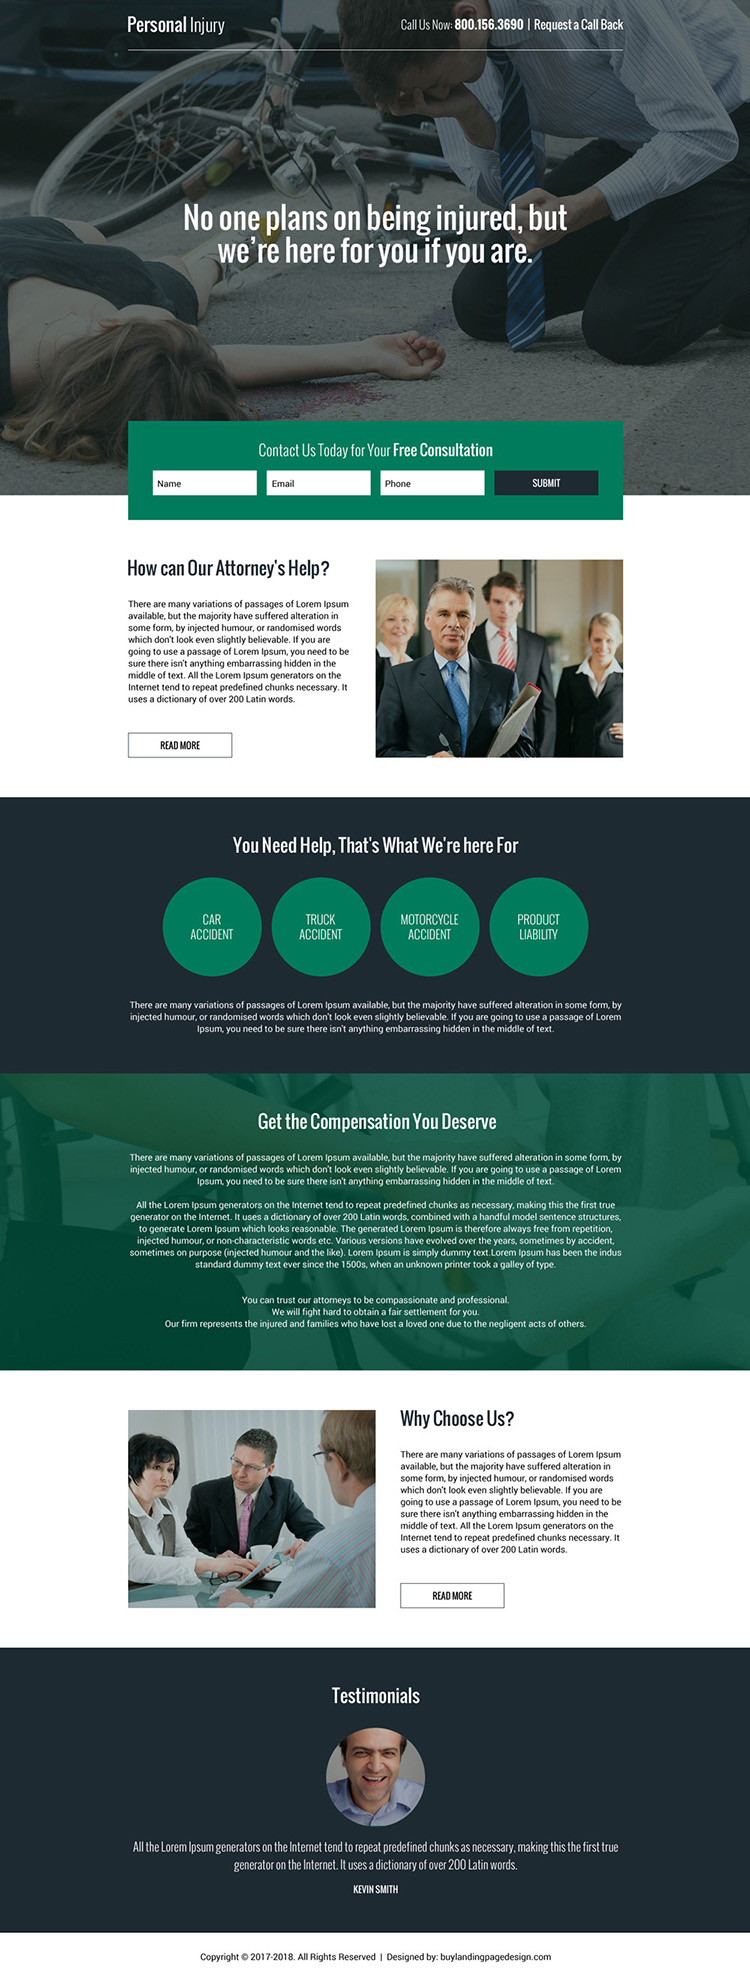 personal injury free consultation lead capturing effective landing page